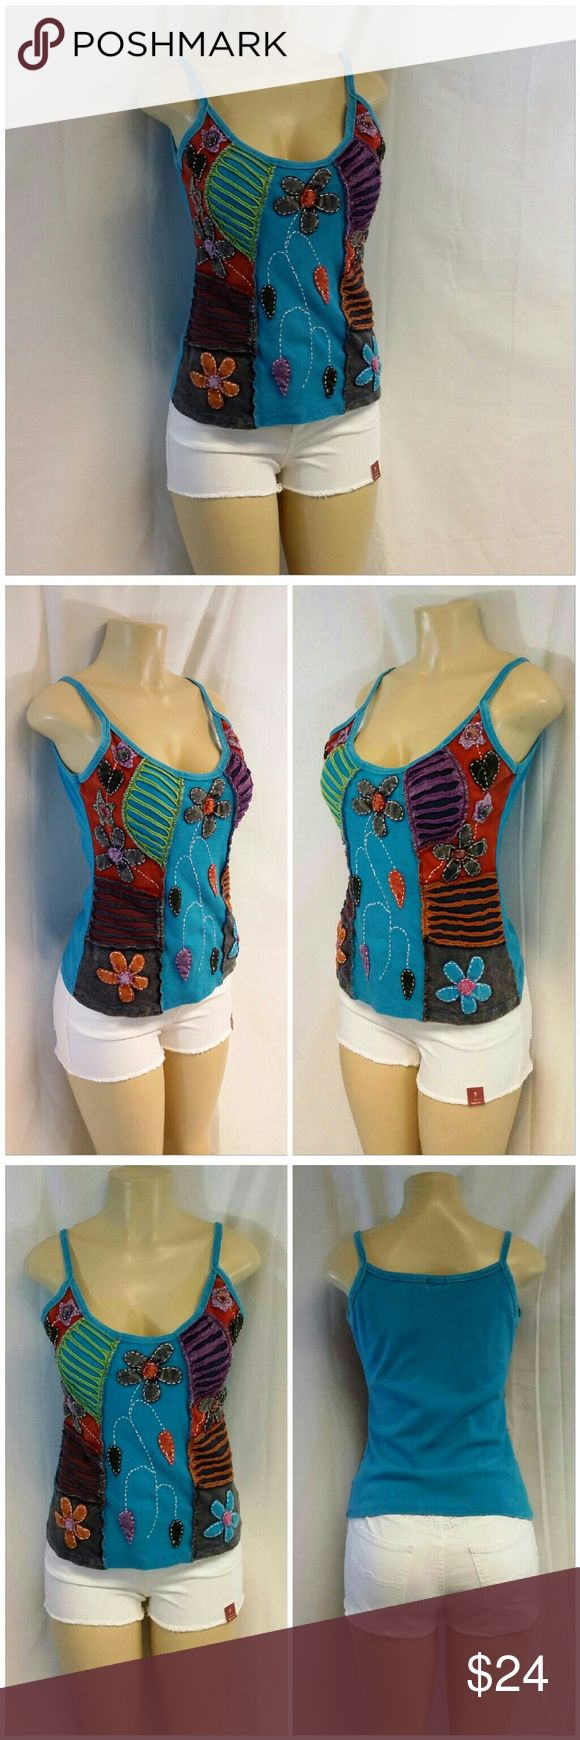 """RISING INTERNATIONAL Unique 2-D Fancy Top Large RISING INTERNATIONAL Unique 2-D Fancy Top, size Large, rib knit with 2-D application, exposed stitching around applications, lots of colorful designs including but not limited to flowers and tear drops, very stretchy, machine washable, cotton blend, 23 1/2"""" length shoulder to hem, 18"""" bust laying flat Rising International  Tops"""